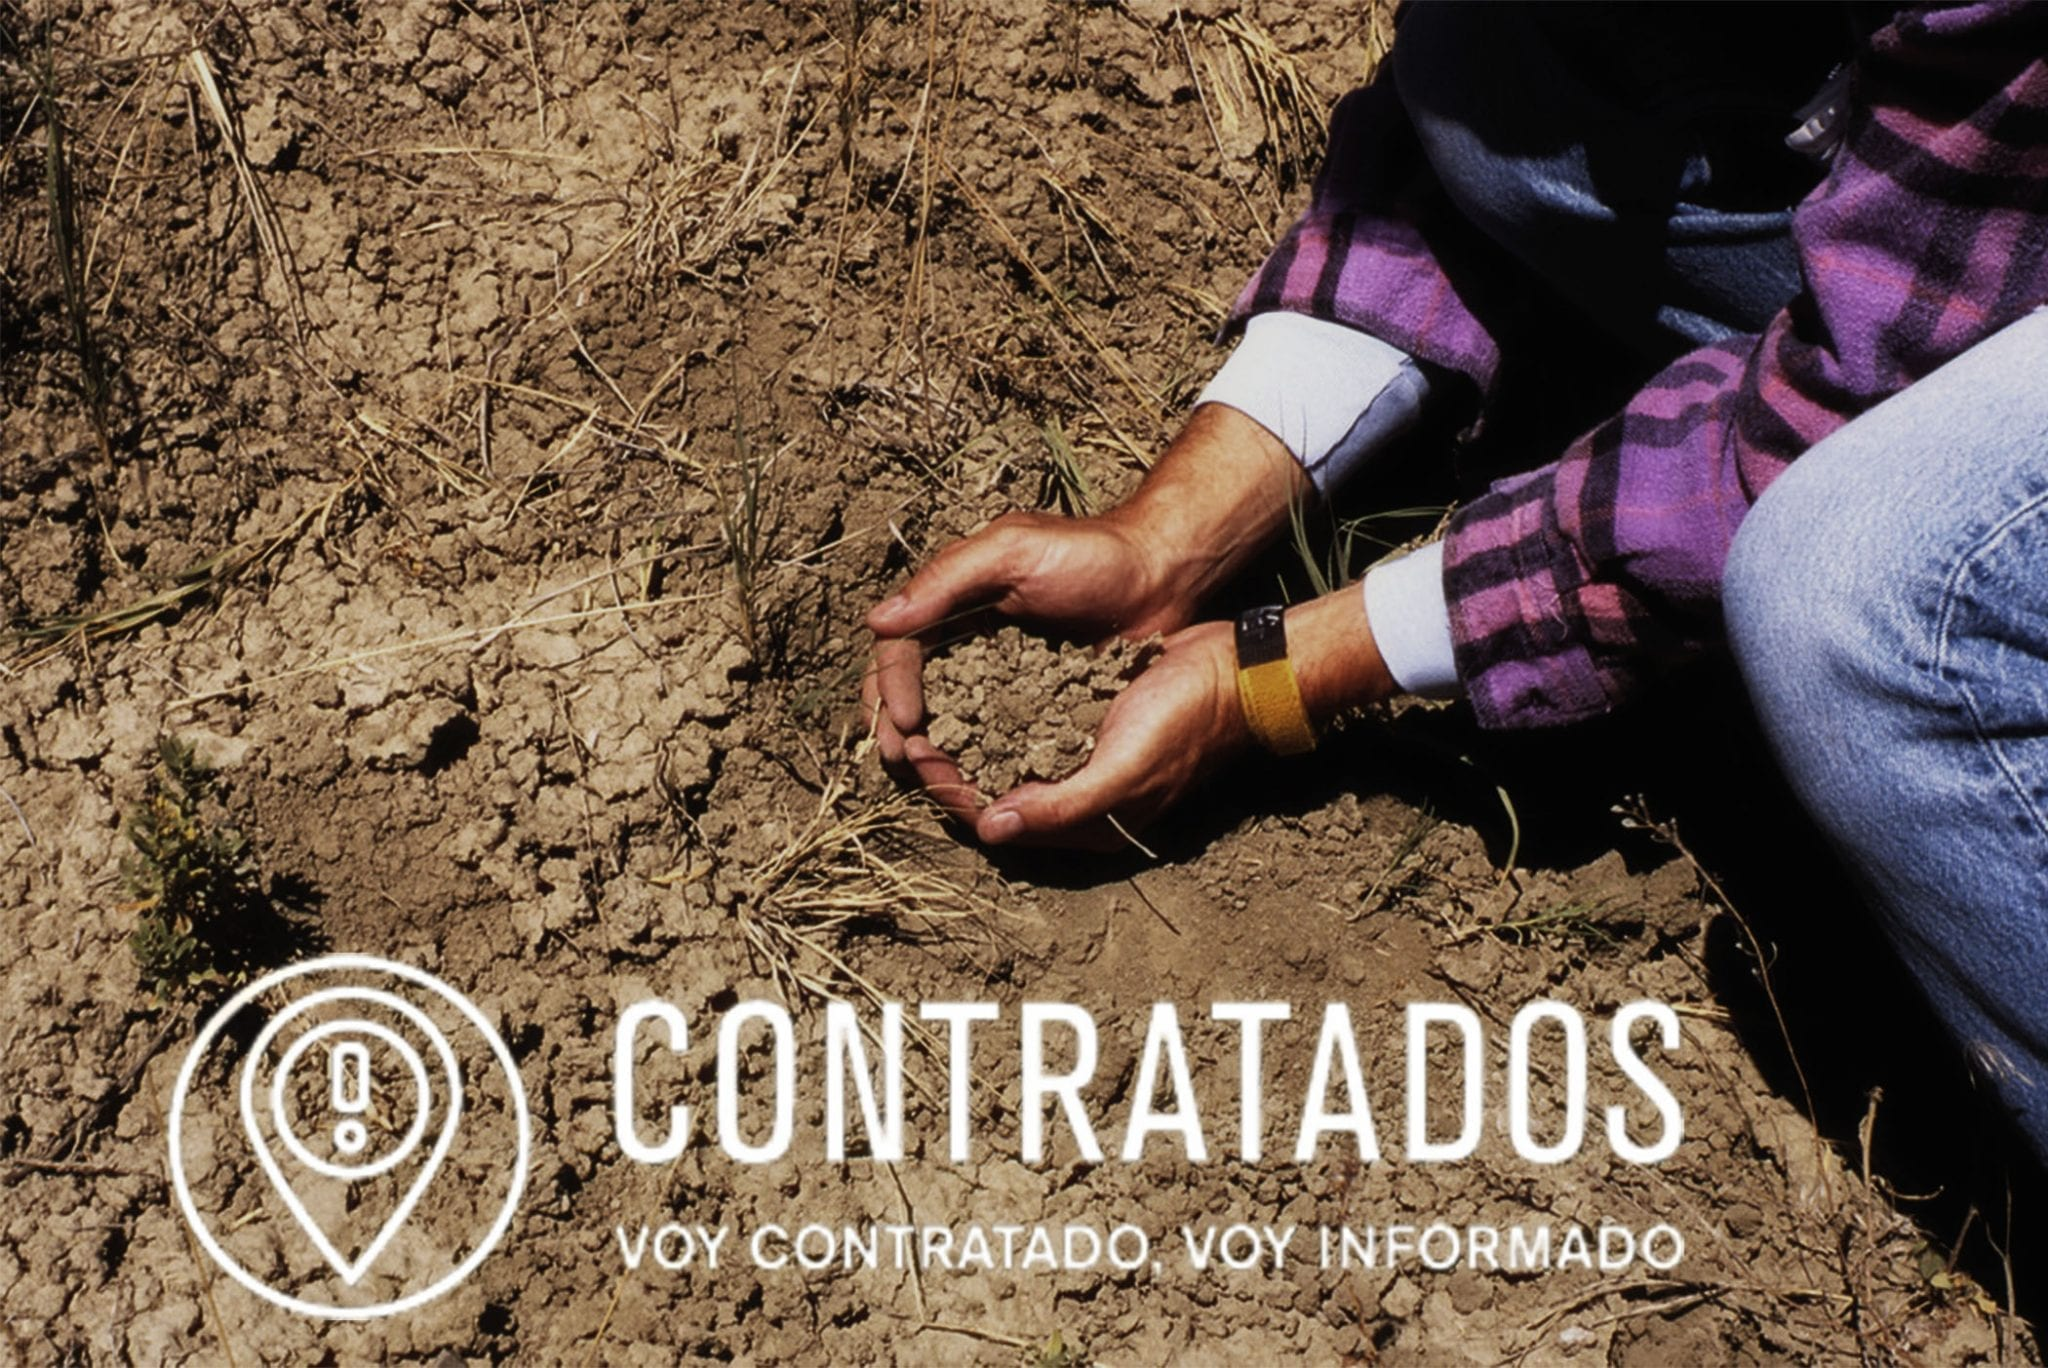 Spotlighting Action: Migrants Empowering Migrant Guestworkers through the Power of Information and Technology at Contratados.org